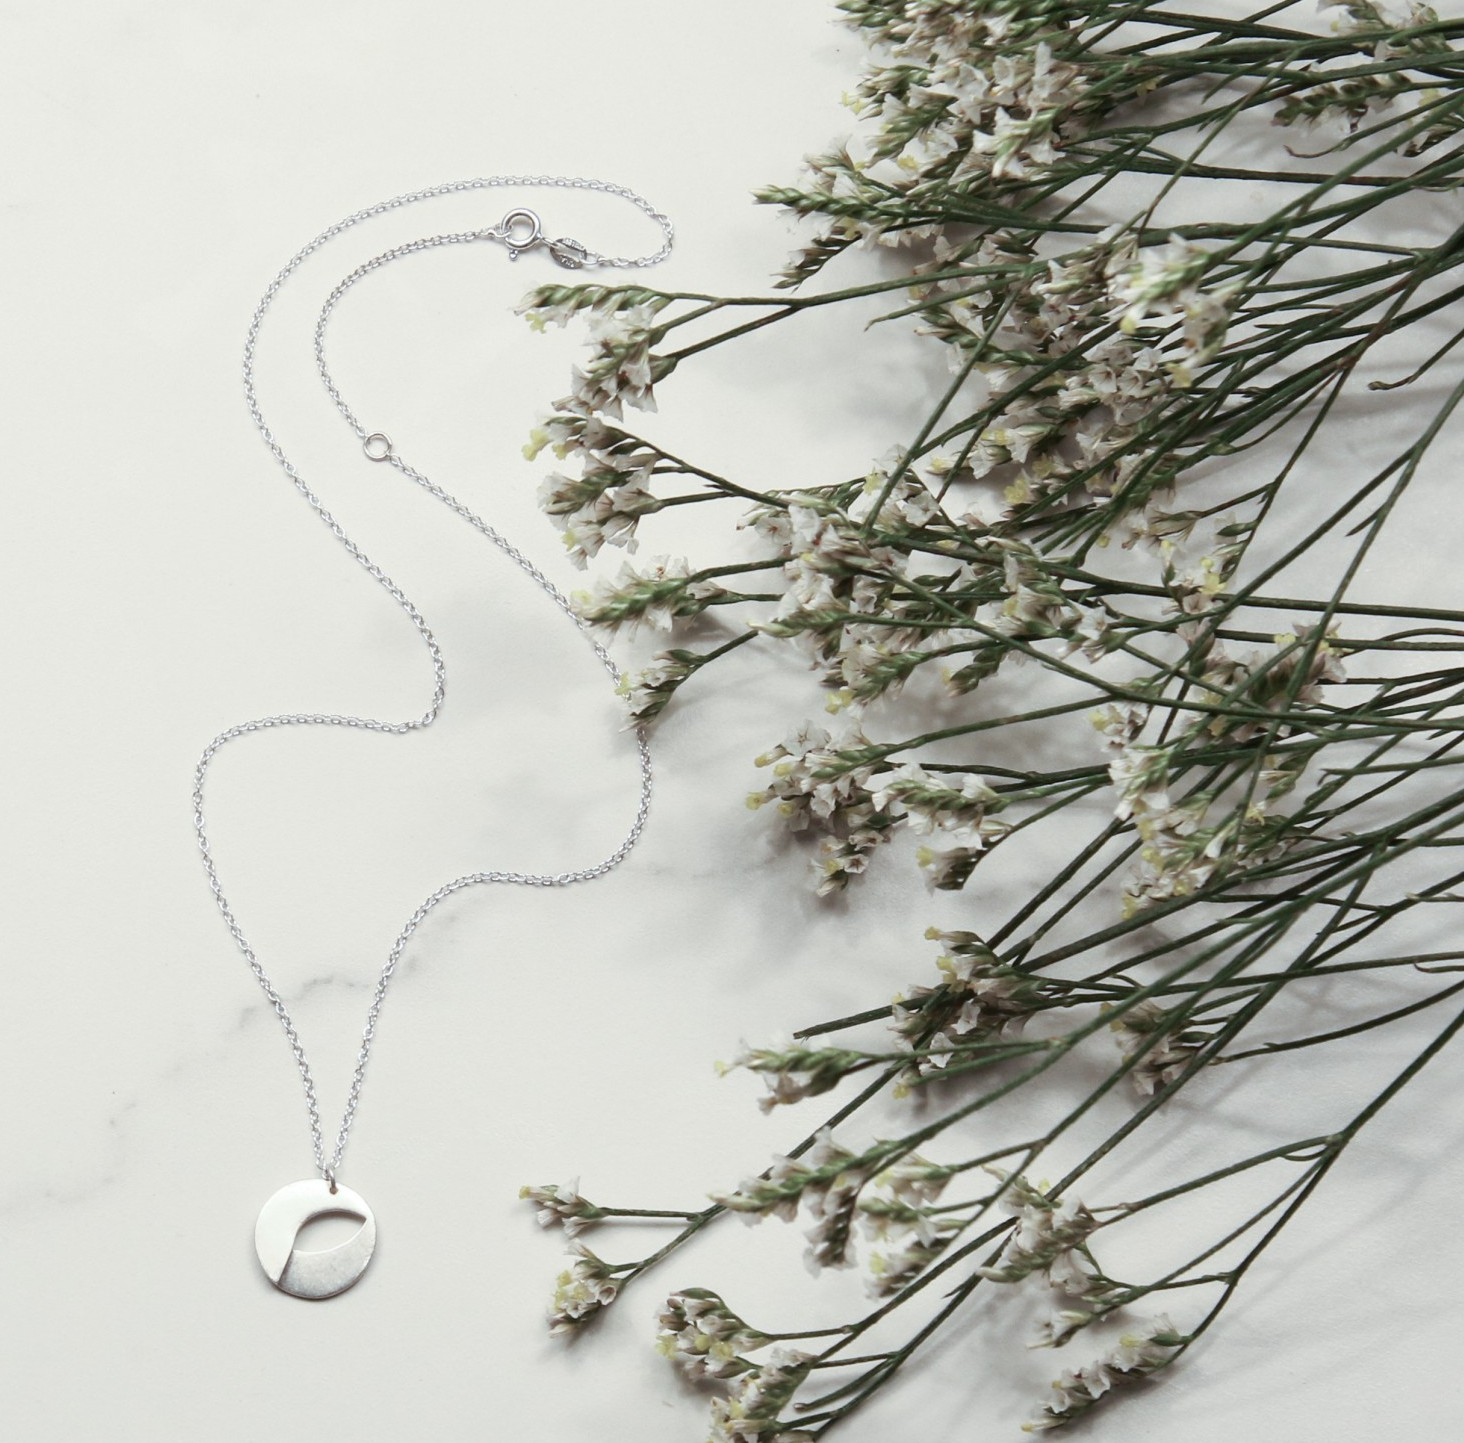 Living Green necklace now available!